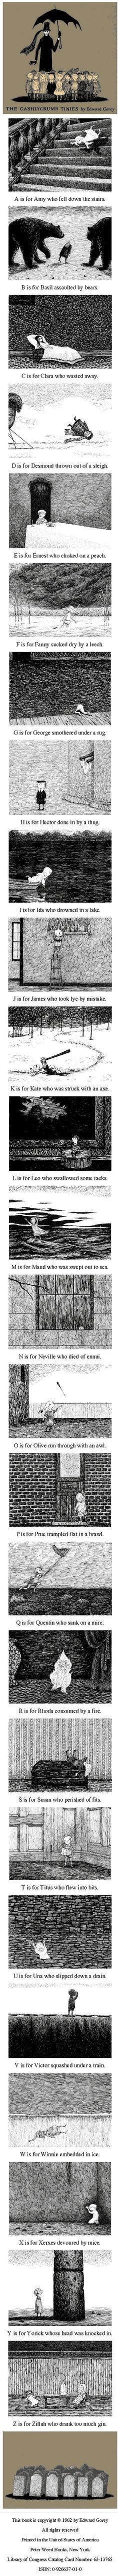 The Gashlycrumb Tinies ~ Edward Gorey